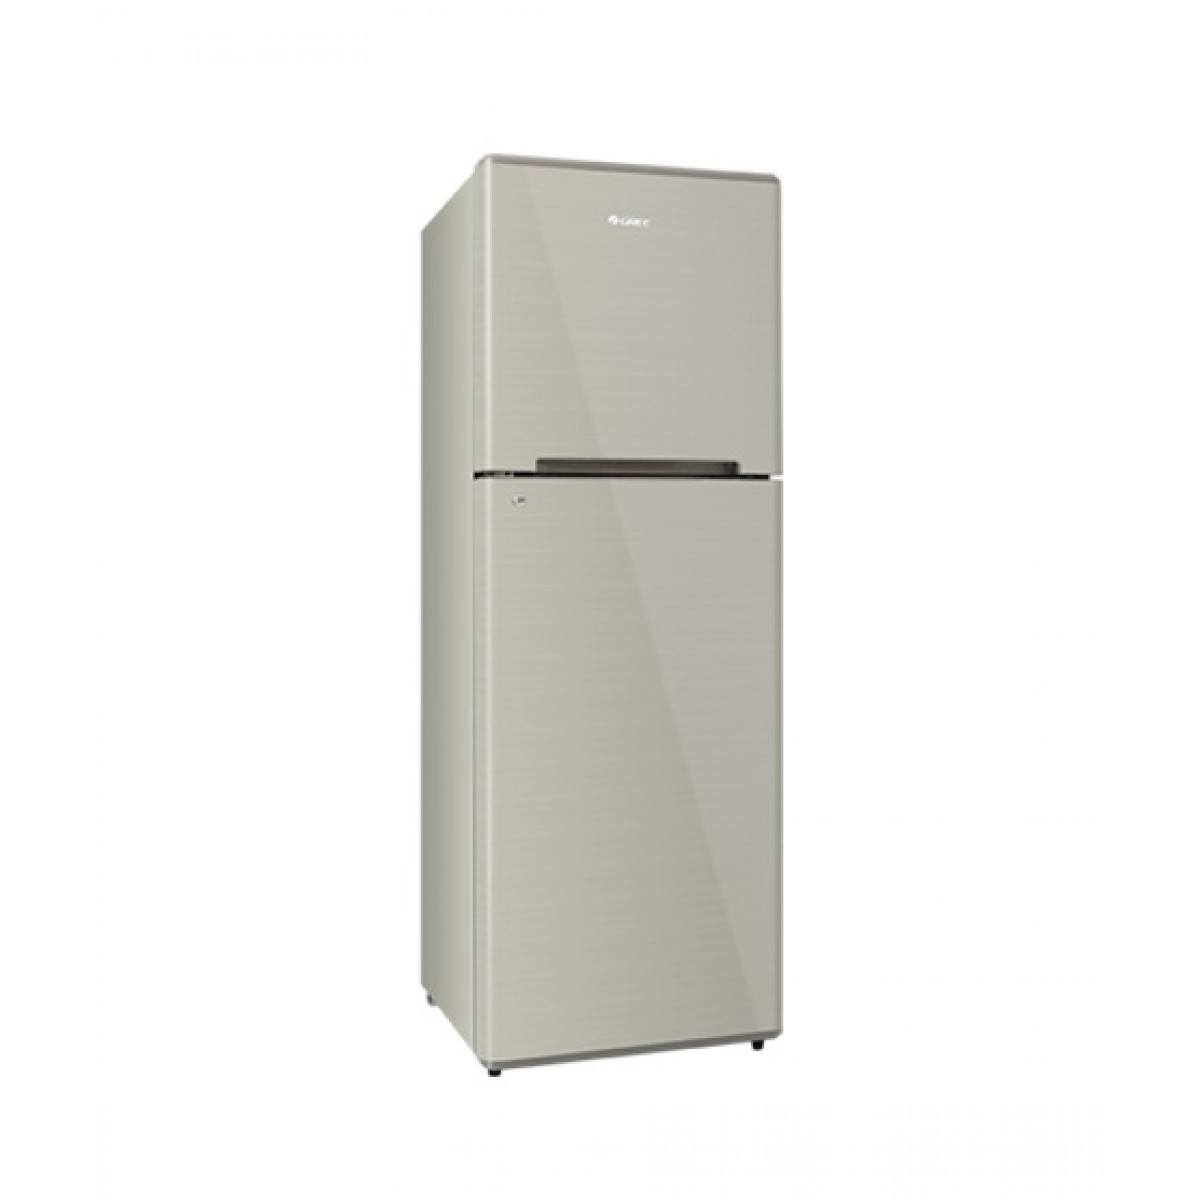 Gree Handle Series Refrigerator Price In Pakistan Buy Gree Glass Refrigerator 12 Cu Ft Champagne Gr 360v Cc1 Ishopping Pk